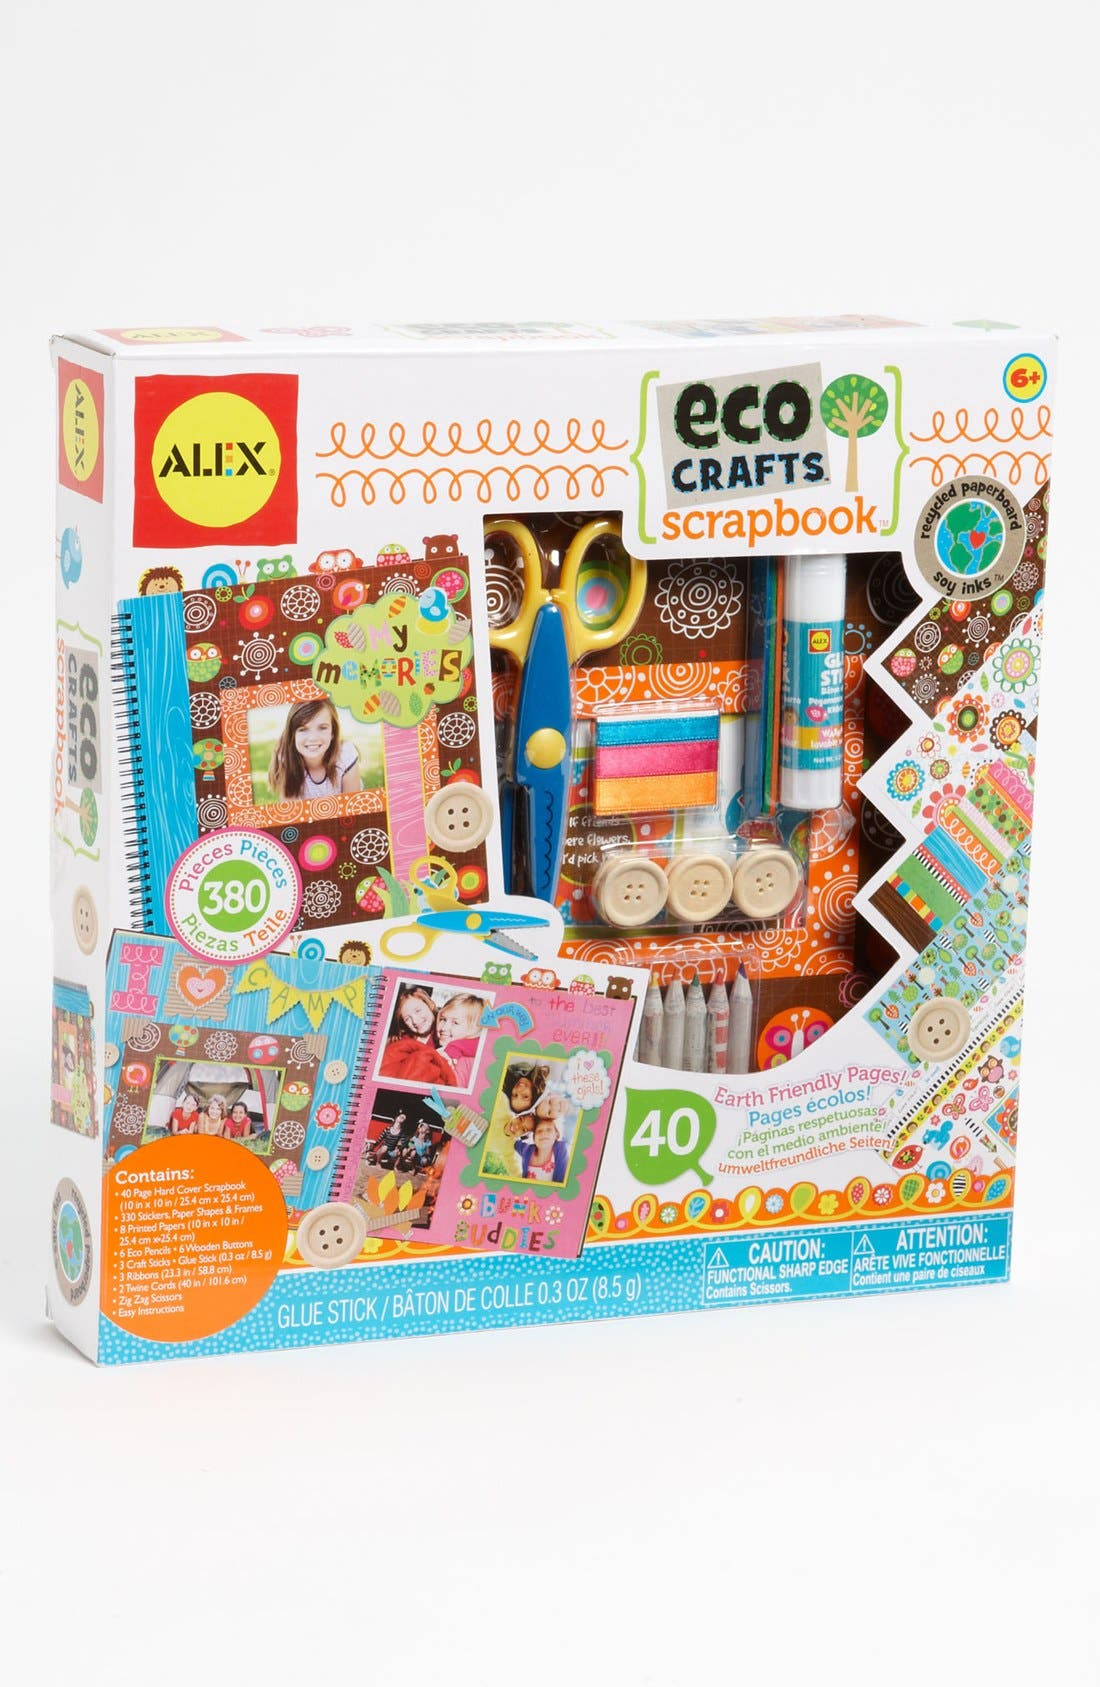 Alternate Image 1 Selected - Alex® Toys 'Eco Crafts' Scrapbook Kit